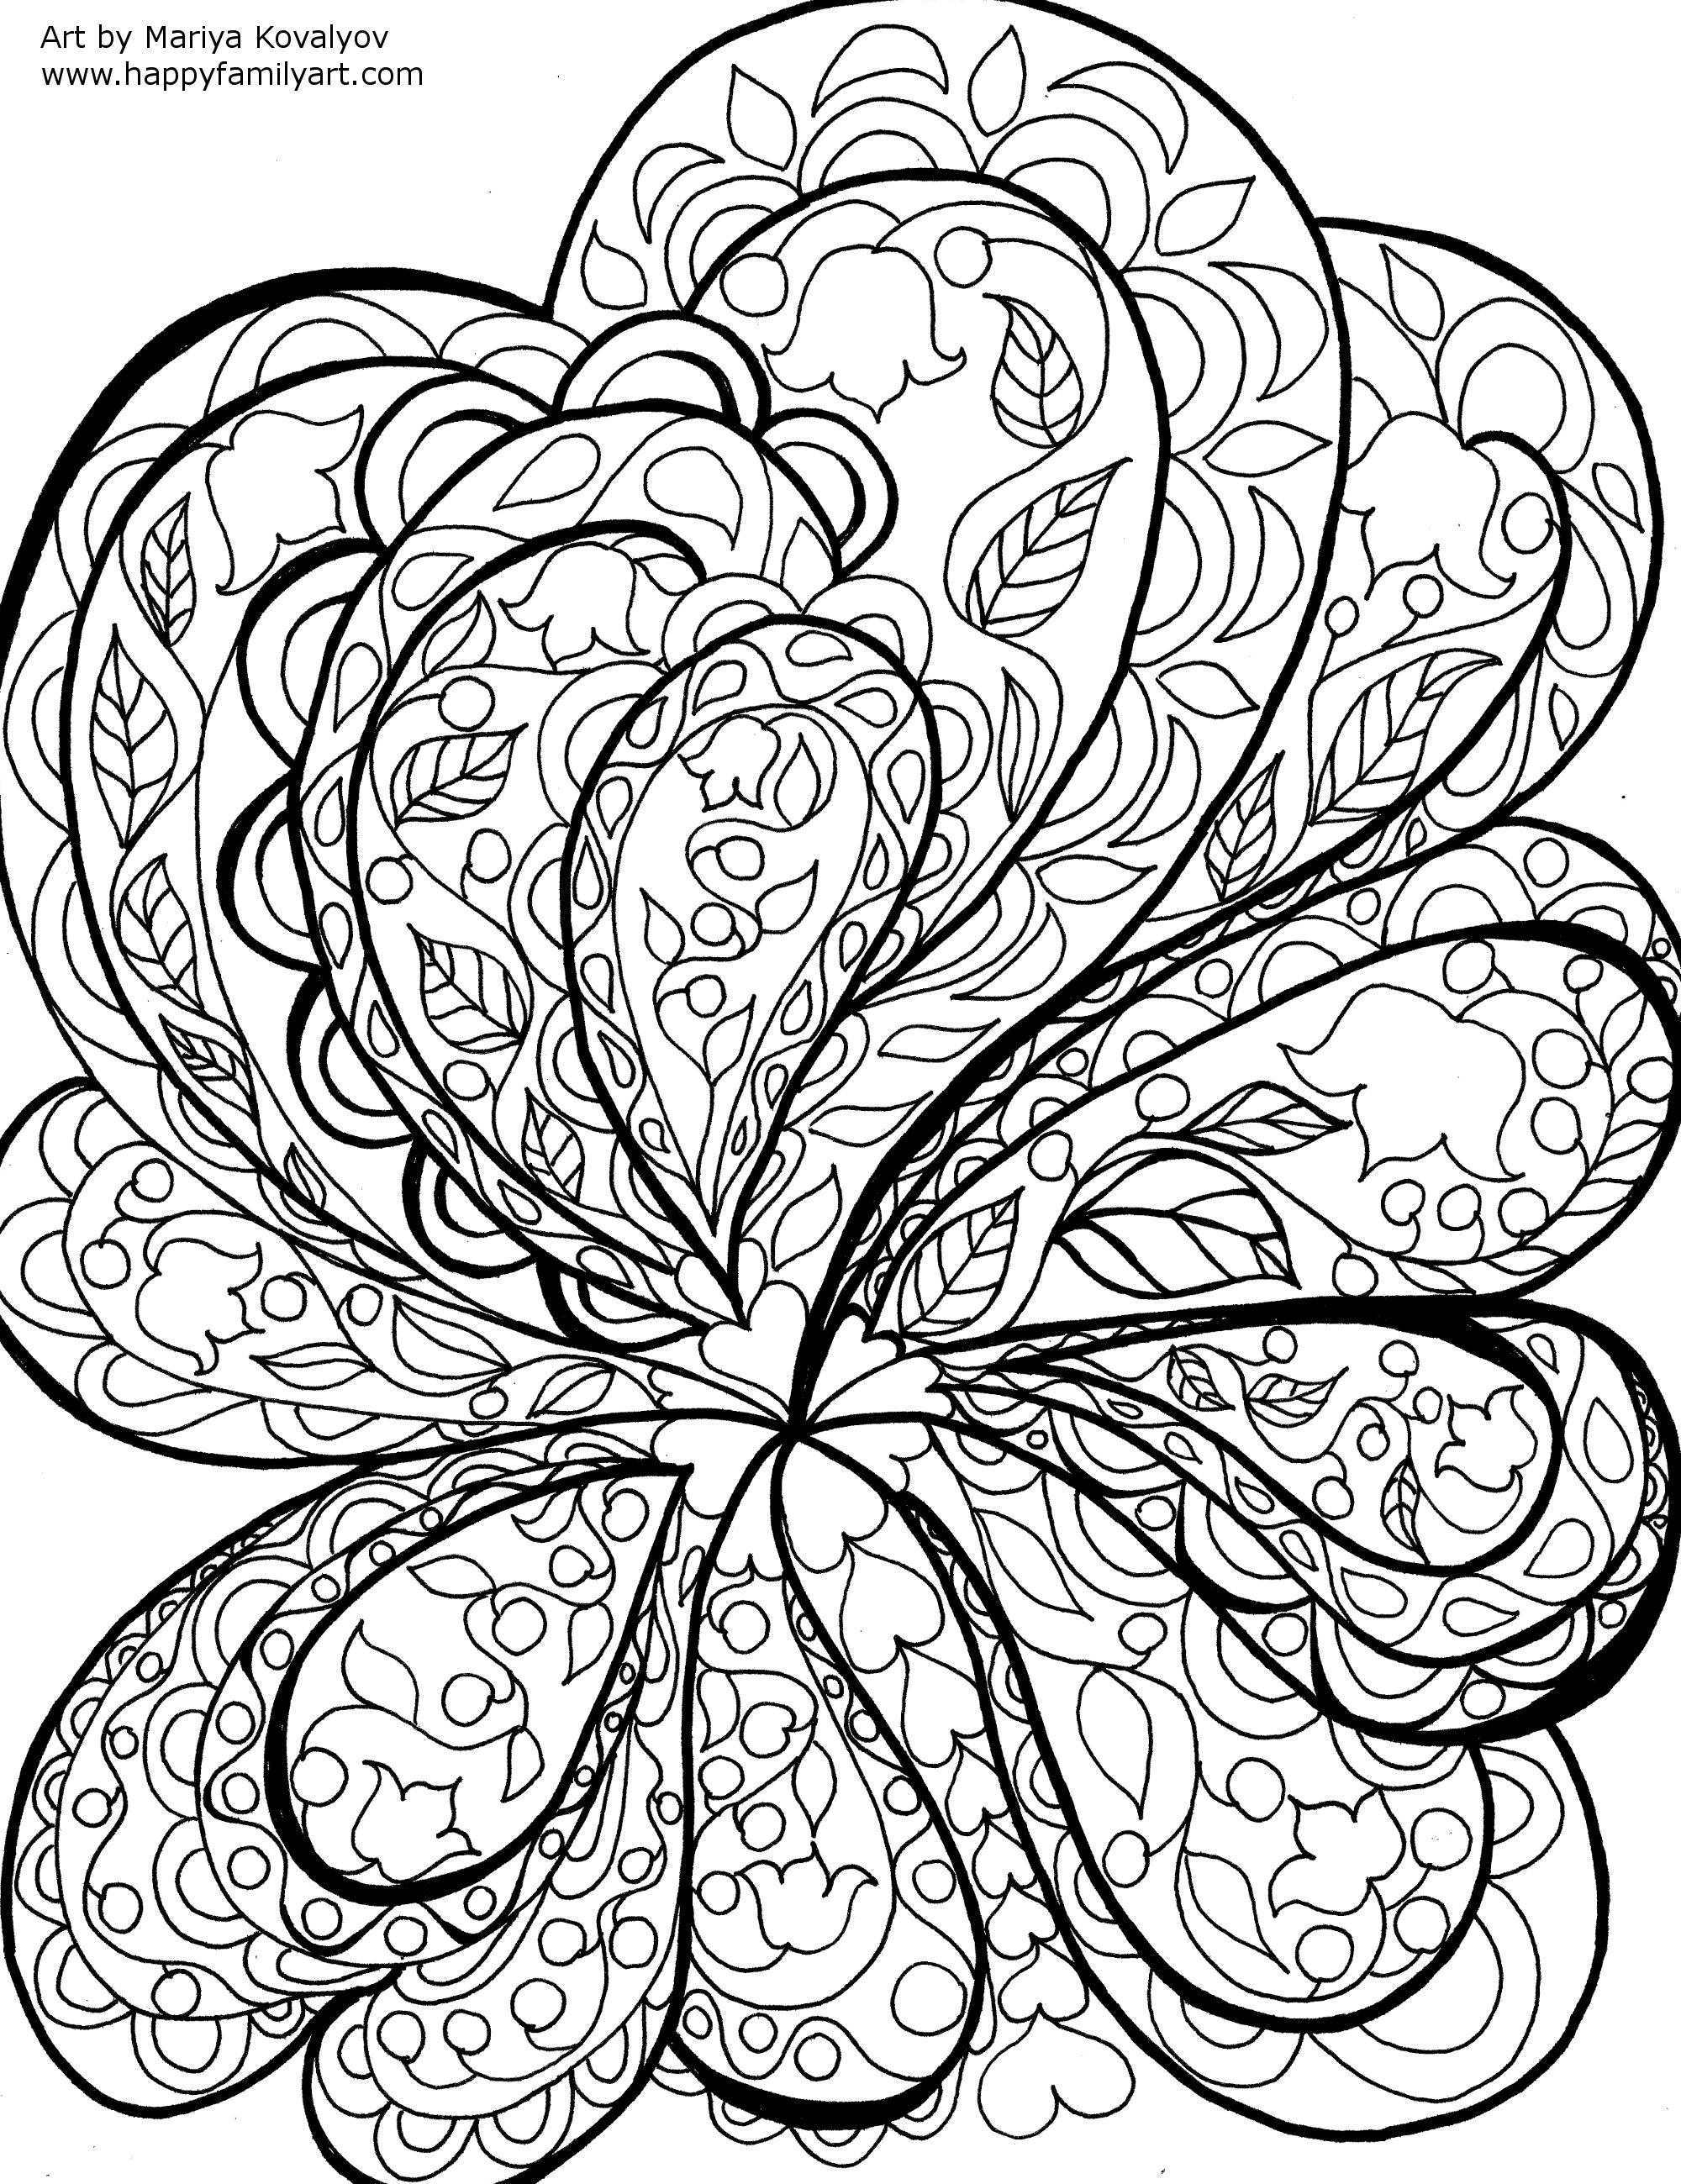 Adult Coloring Pages Nature Patterns Abstract Coloring Pages